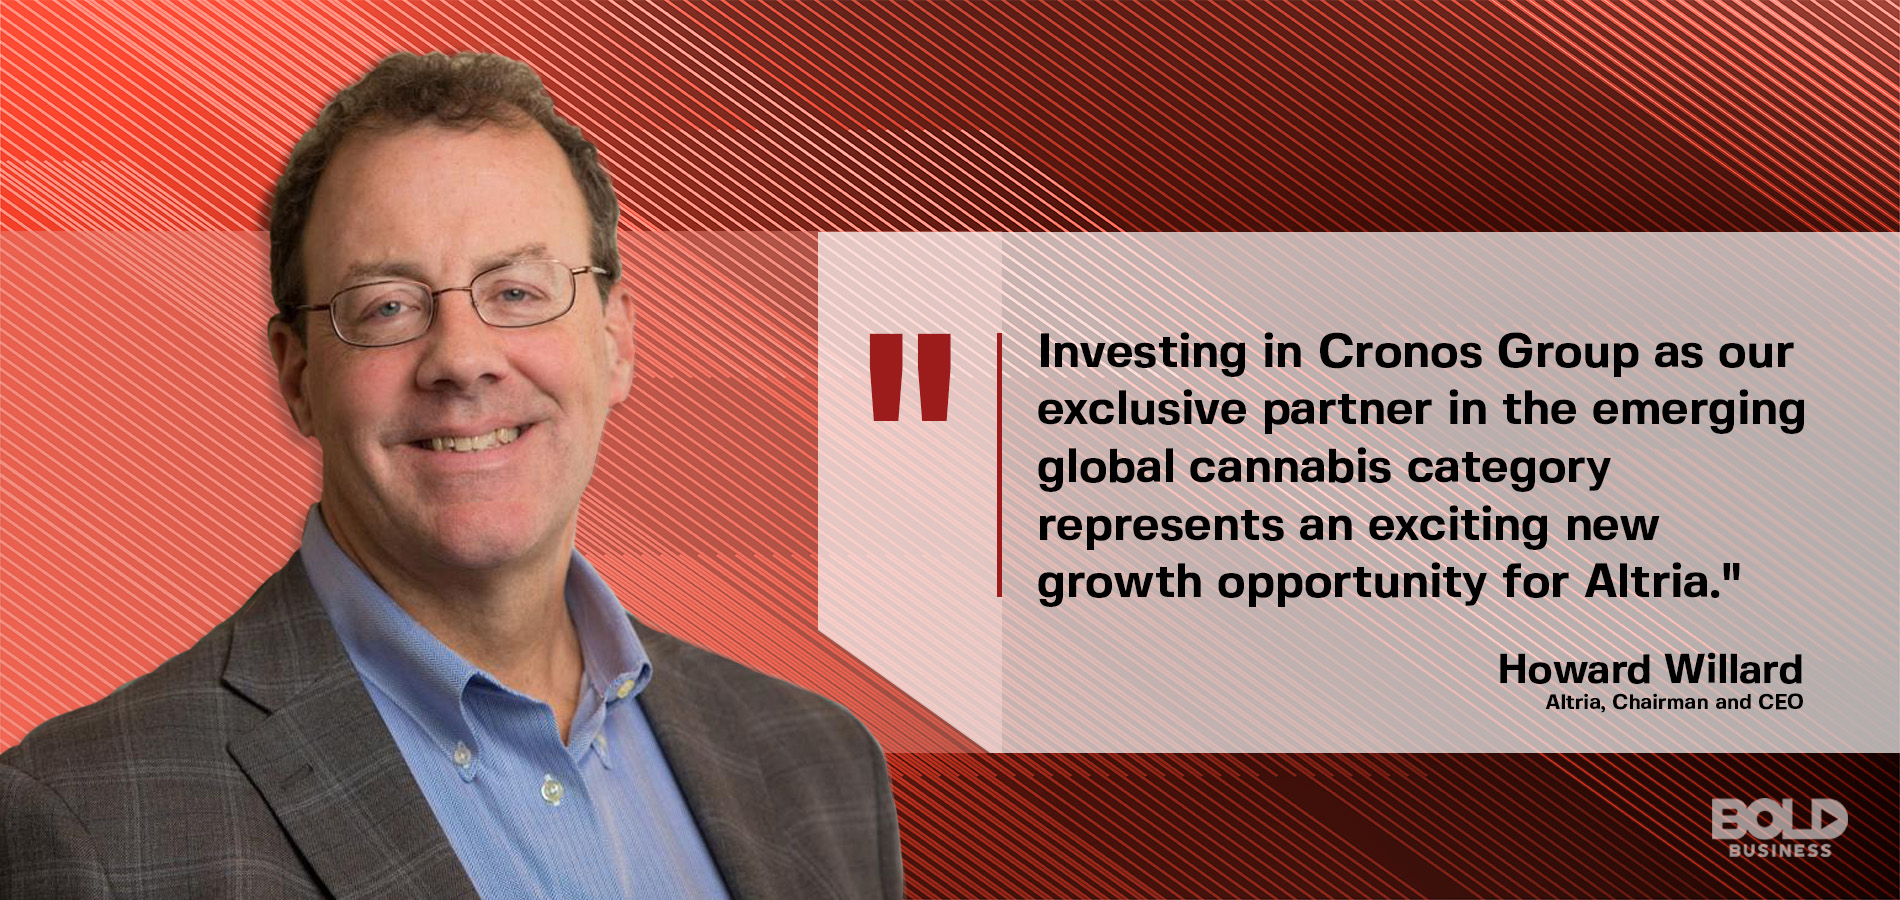 a photo quote from Howard Willard, Altria's chairman and chief executive officer, on on the bold impact of Altria's investment in the Cronos company